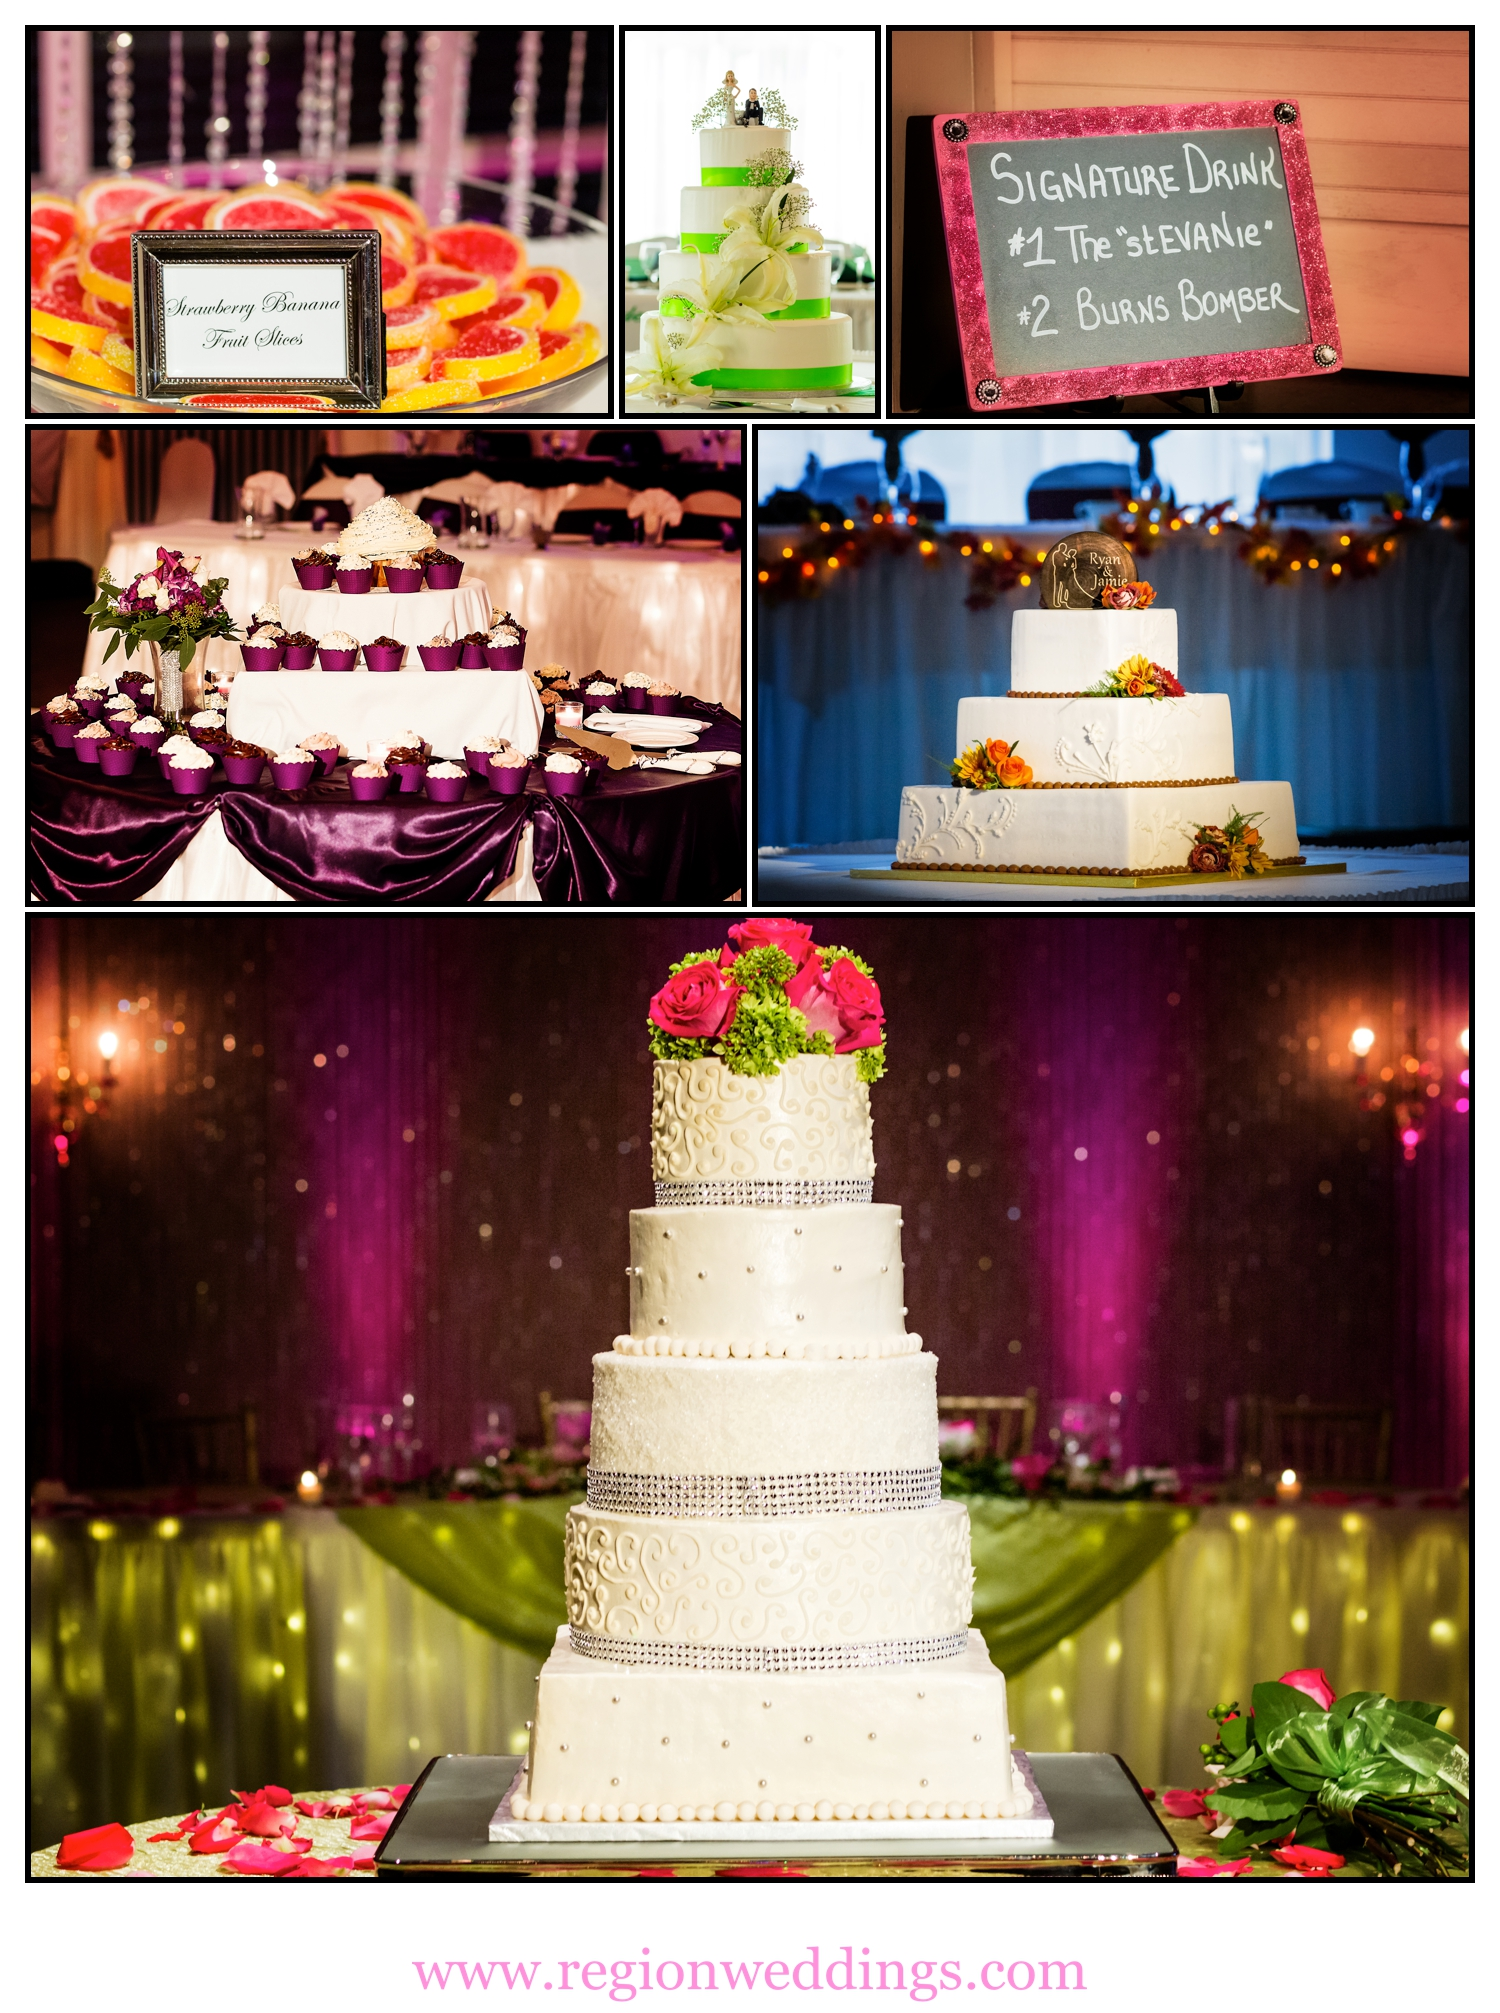 Wedding cakes and treats photo collage.